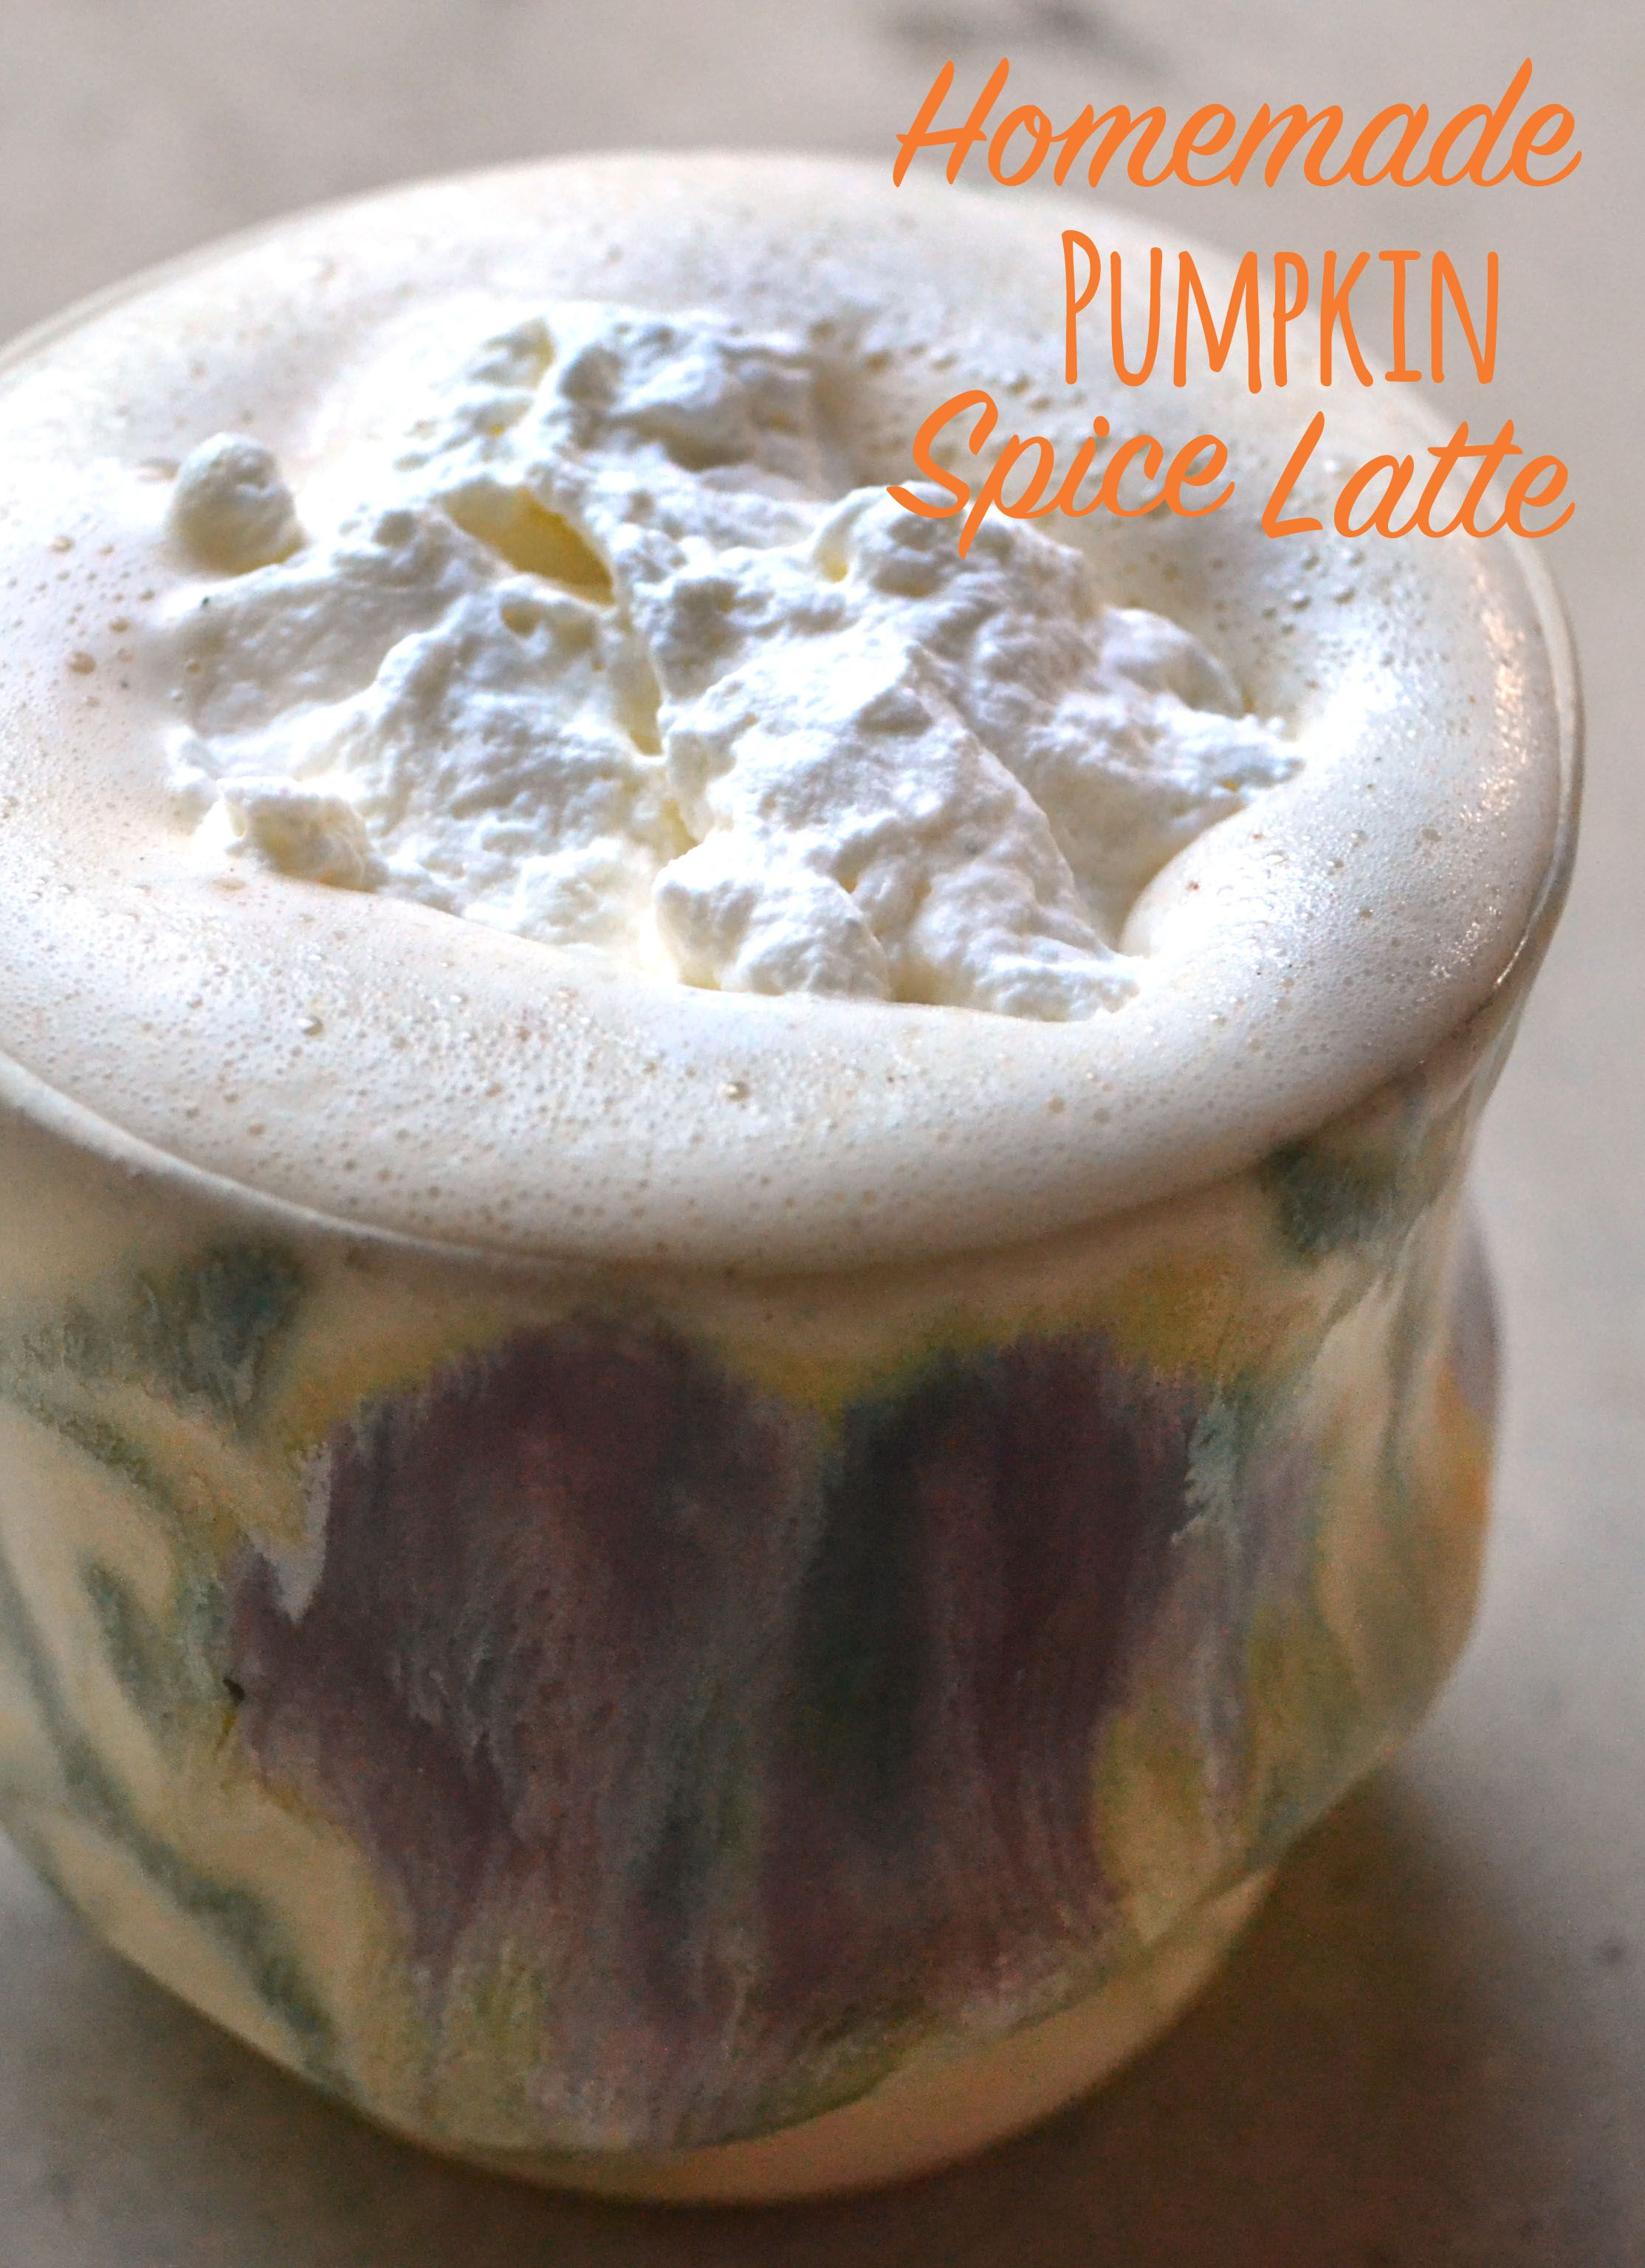 Homemade Pumpkin Spice Latte - We love pumpkin spice latte season, but they're so expensive! Making your own at home is actually really easy and SO much better!